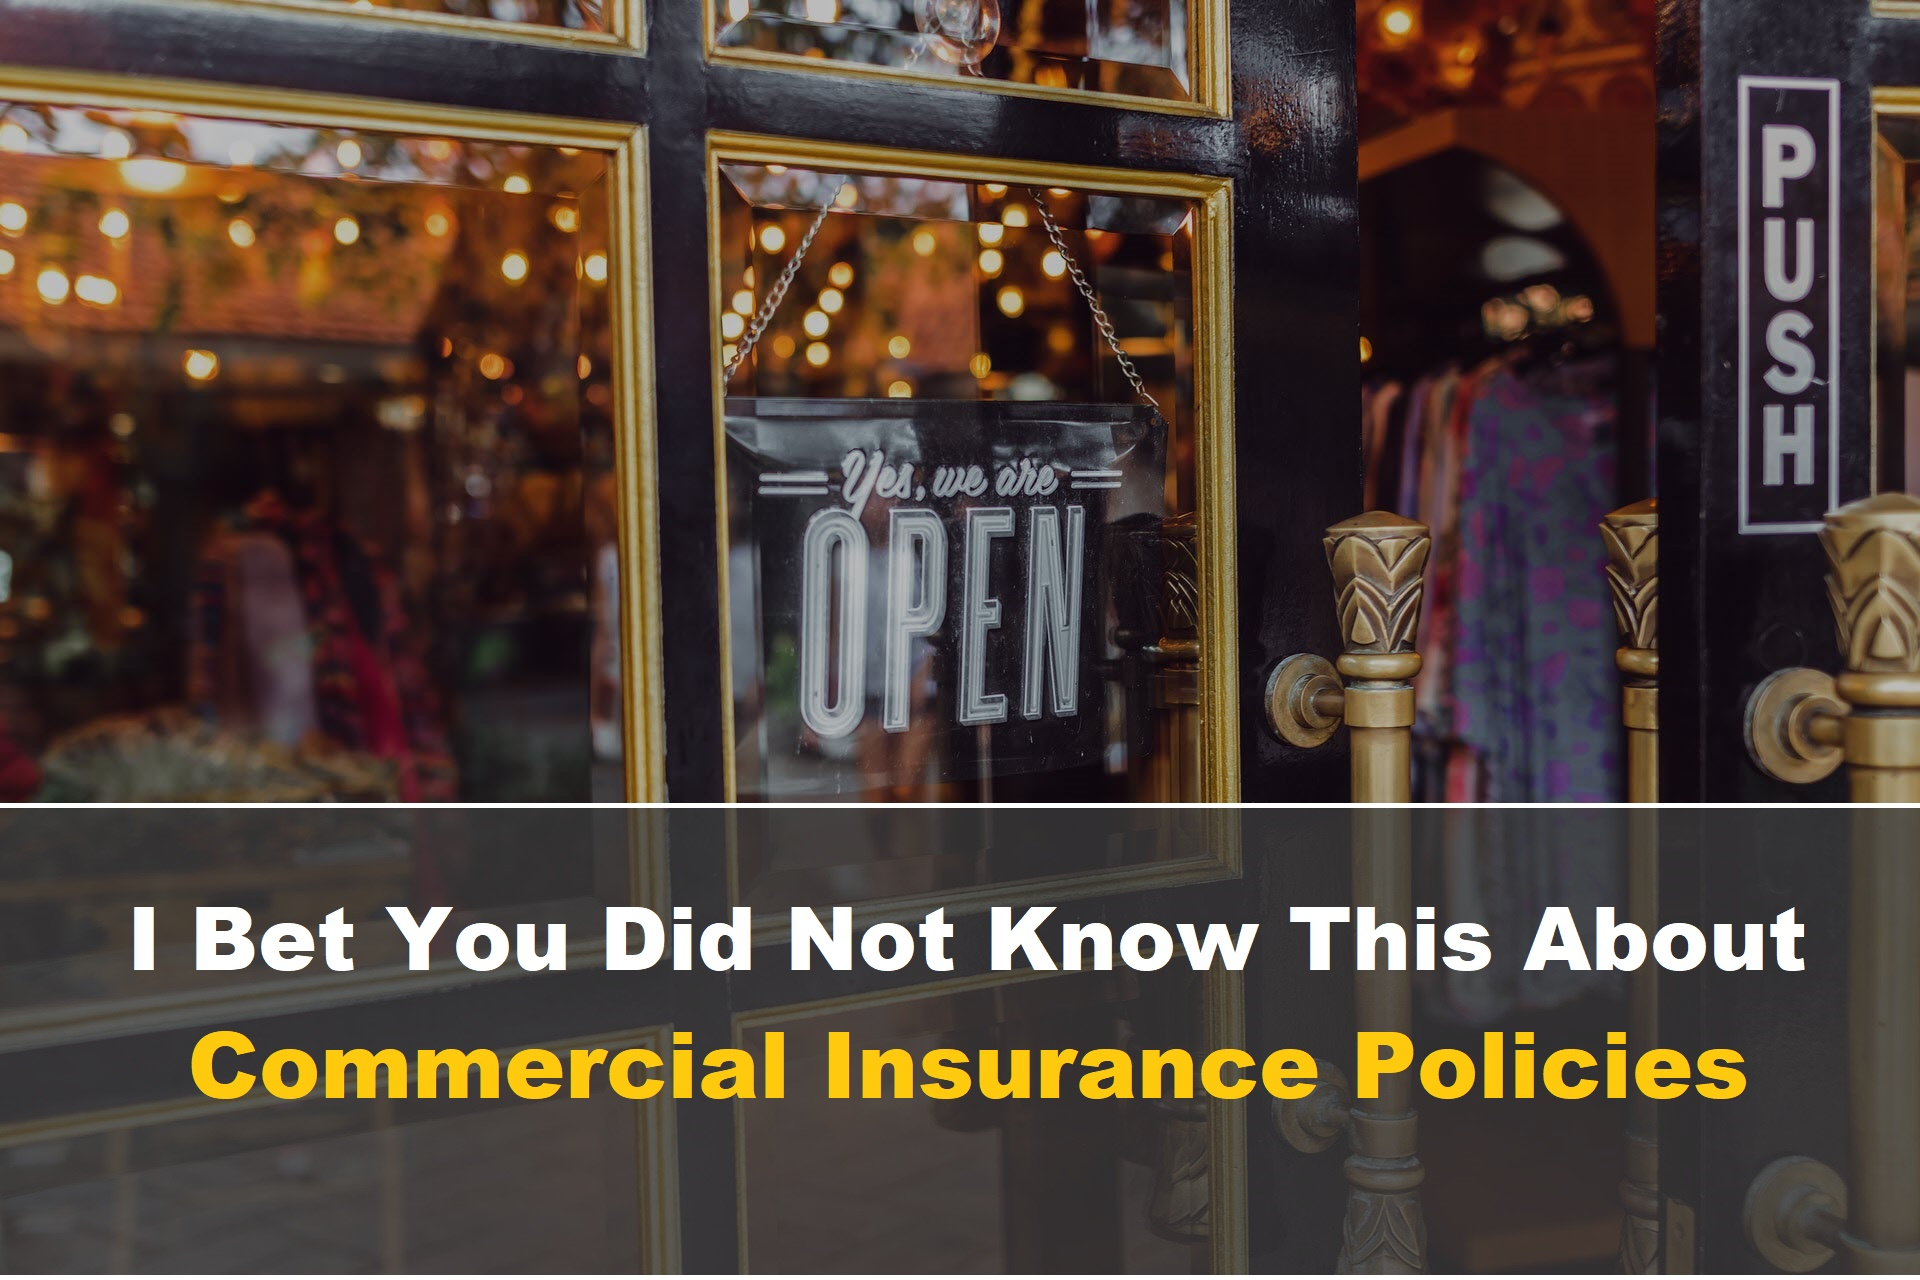 I Bet You Did Not Know This About Commercial Insurance Policies